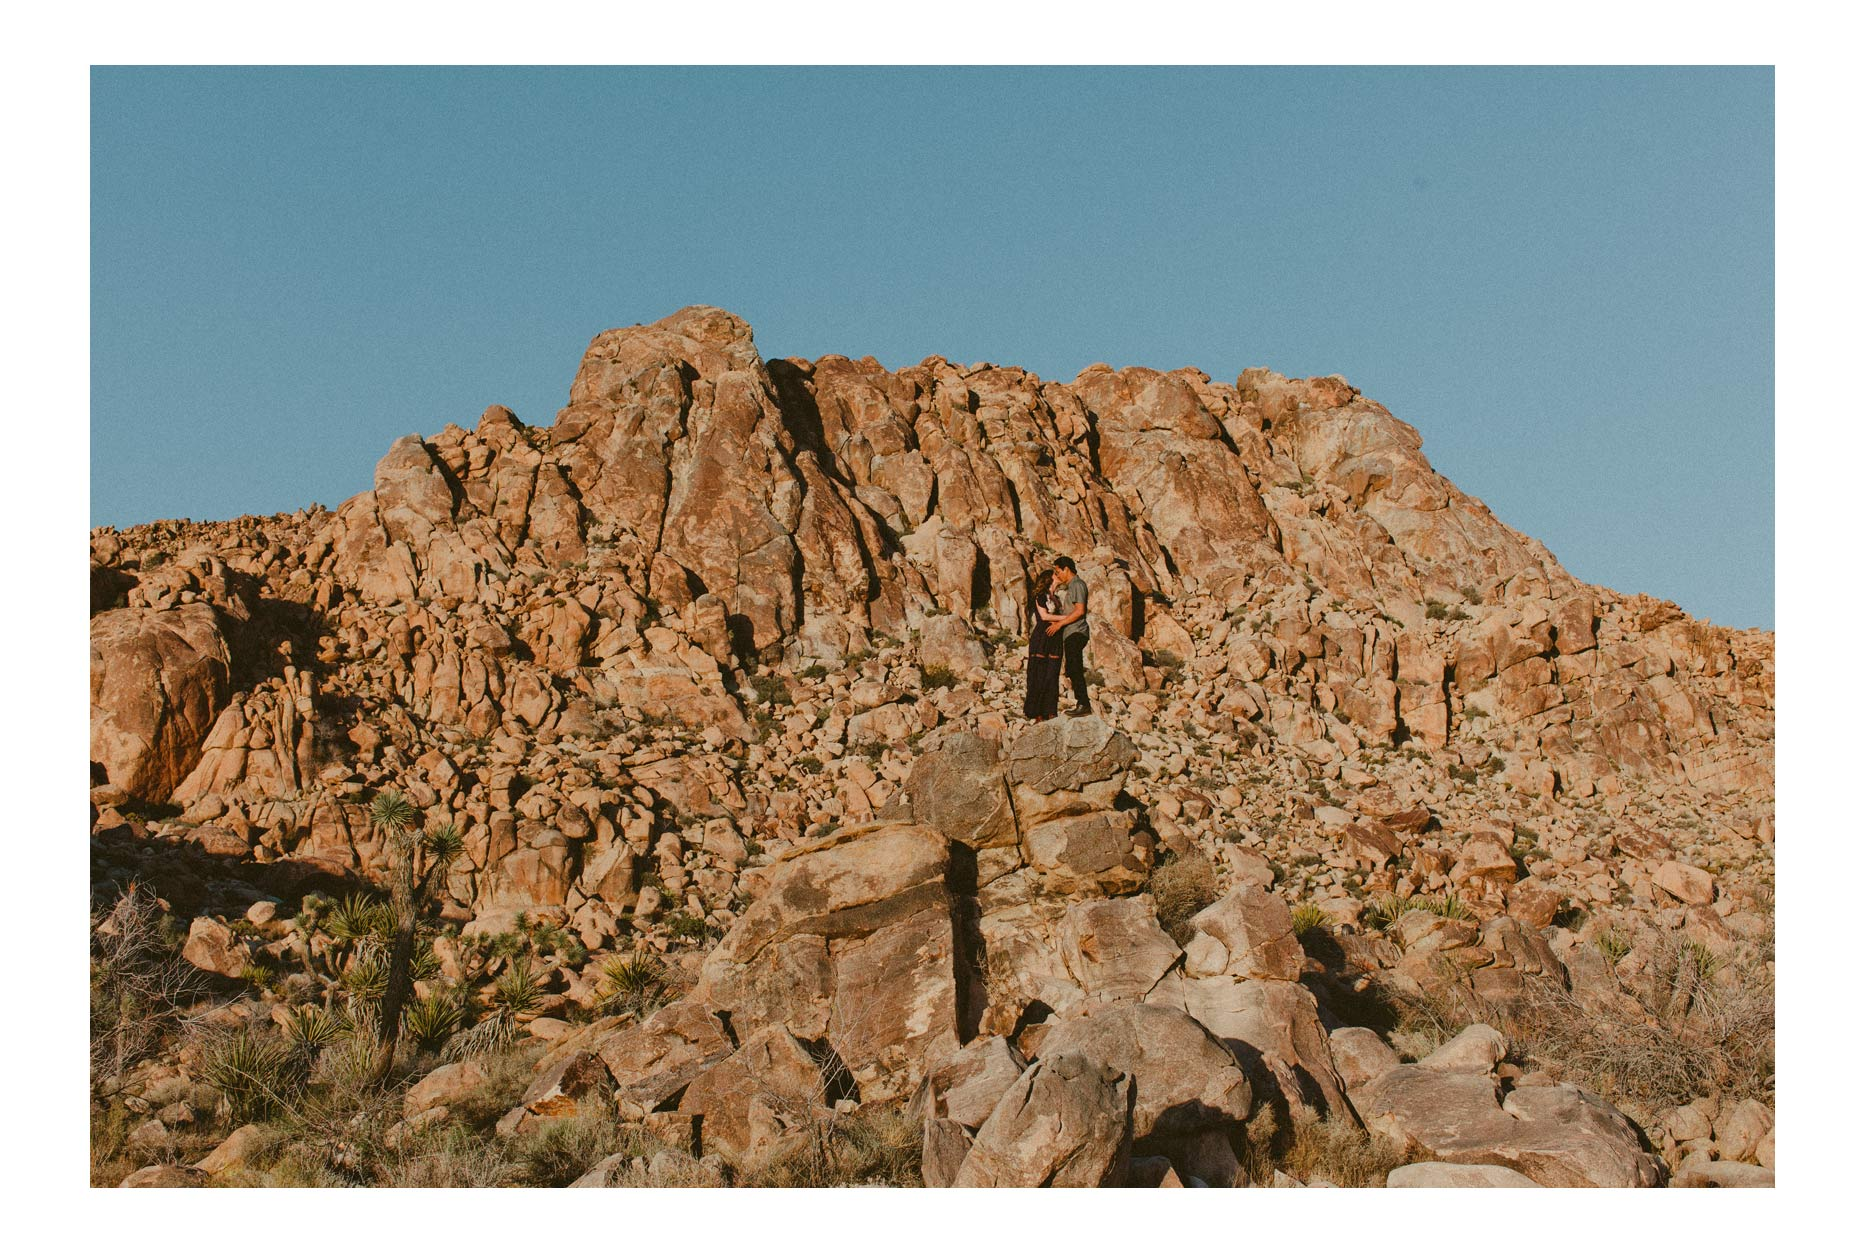 joshua tree wedding photographers, wedding photographers in joshua tree, Ruins-wedding-photographer, rustic best creative wedding photographers in pioneertown joshua tree Rim-rock-ranch-wedding-photographer-joshua-tree-wedding-photographer-pioneertown-wedding-photographer